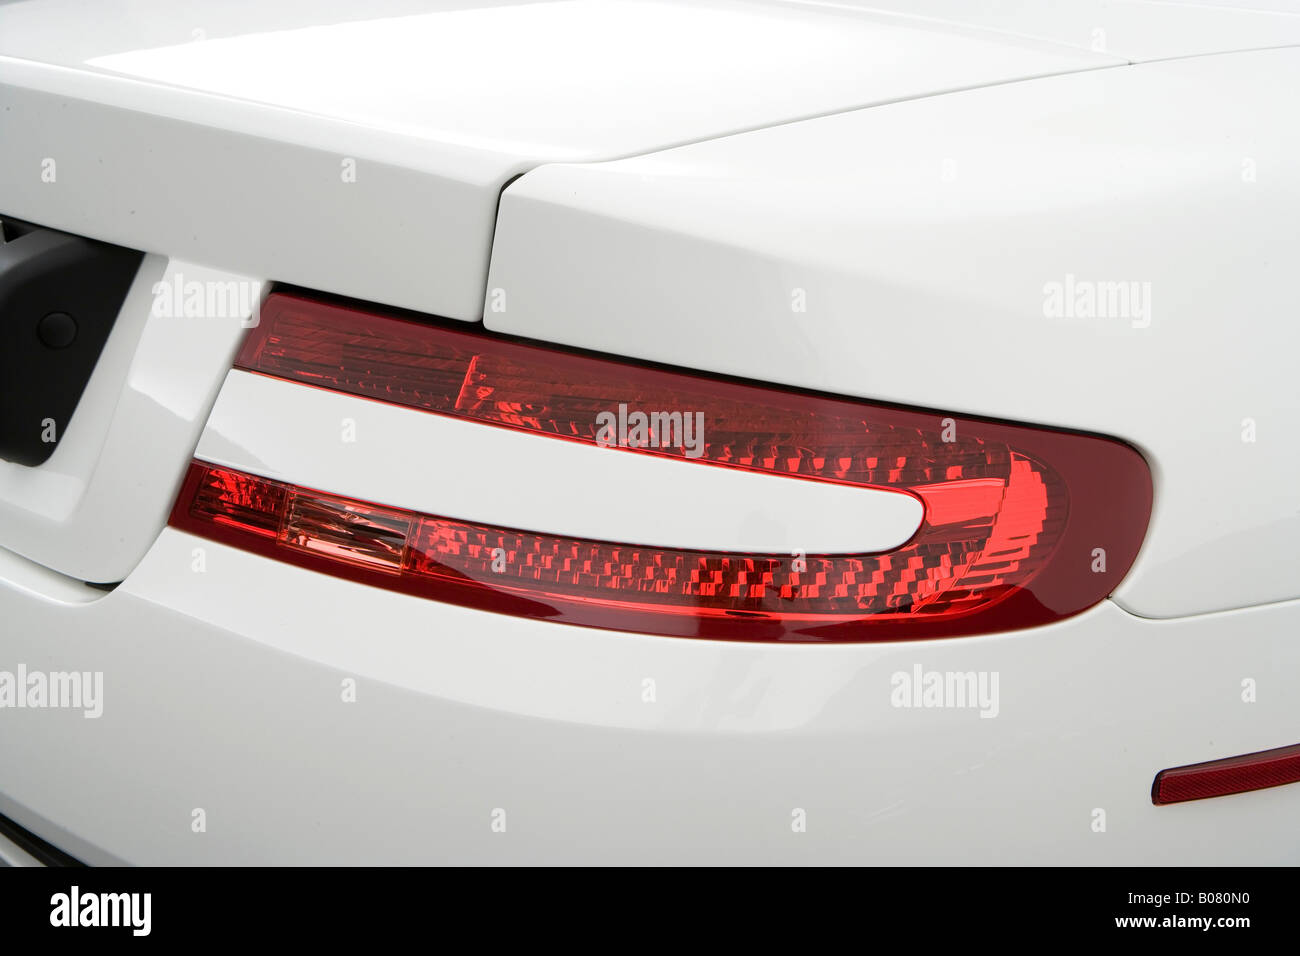 2008 Aston Martin Db9 Volante In White Tail Light Stock Photo